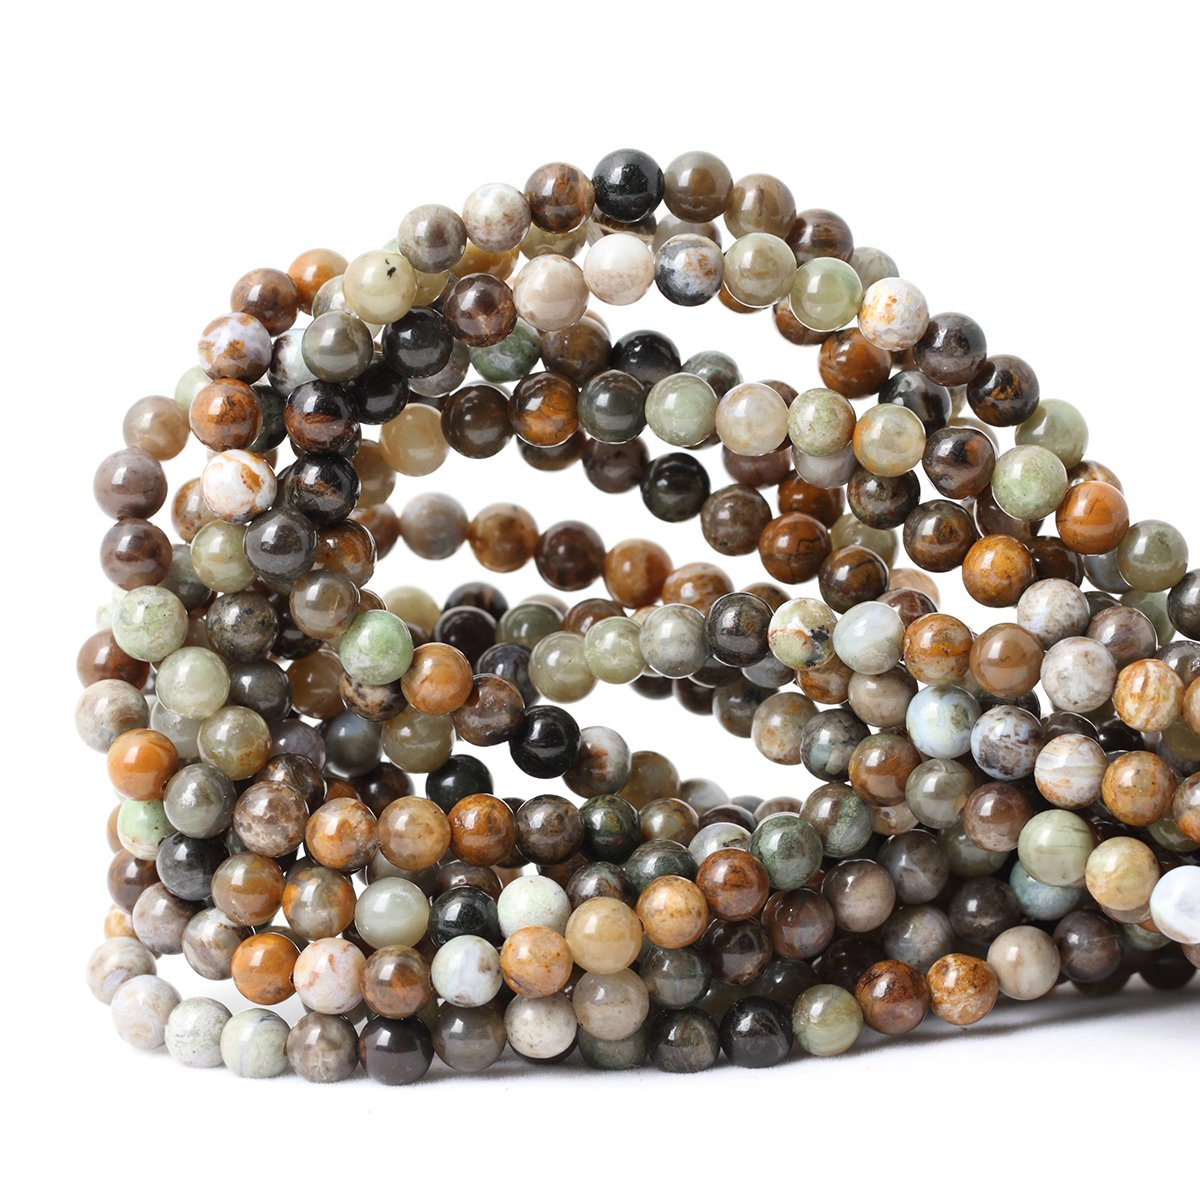 Ocean Jade 6mm Qiwan 35PCS 10mm Natural African Turquoise Stone Round Loose Beads for Jewelry Making DIY Bracelet Making Supplies 1 Strand 15